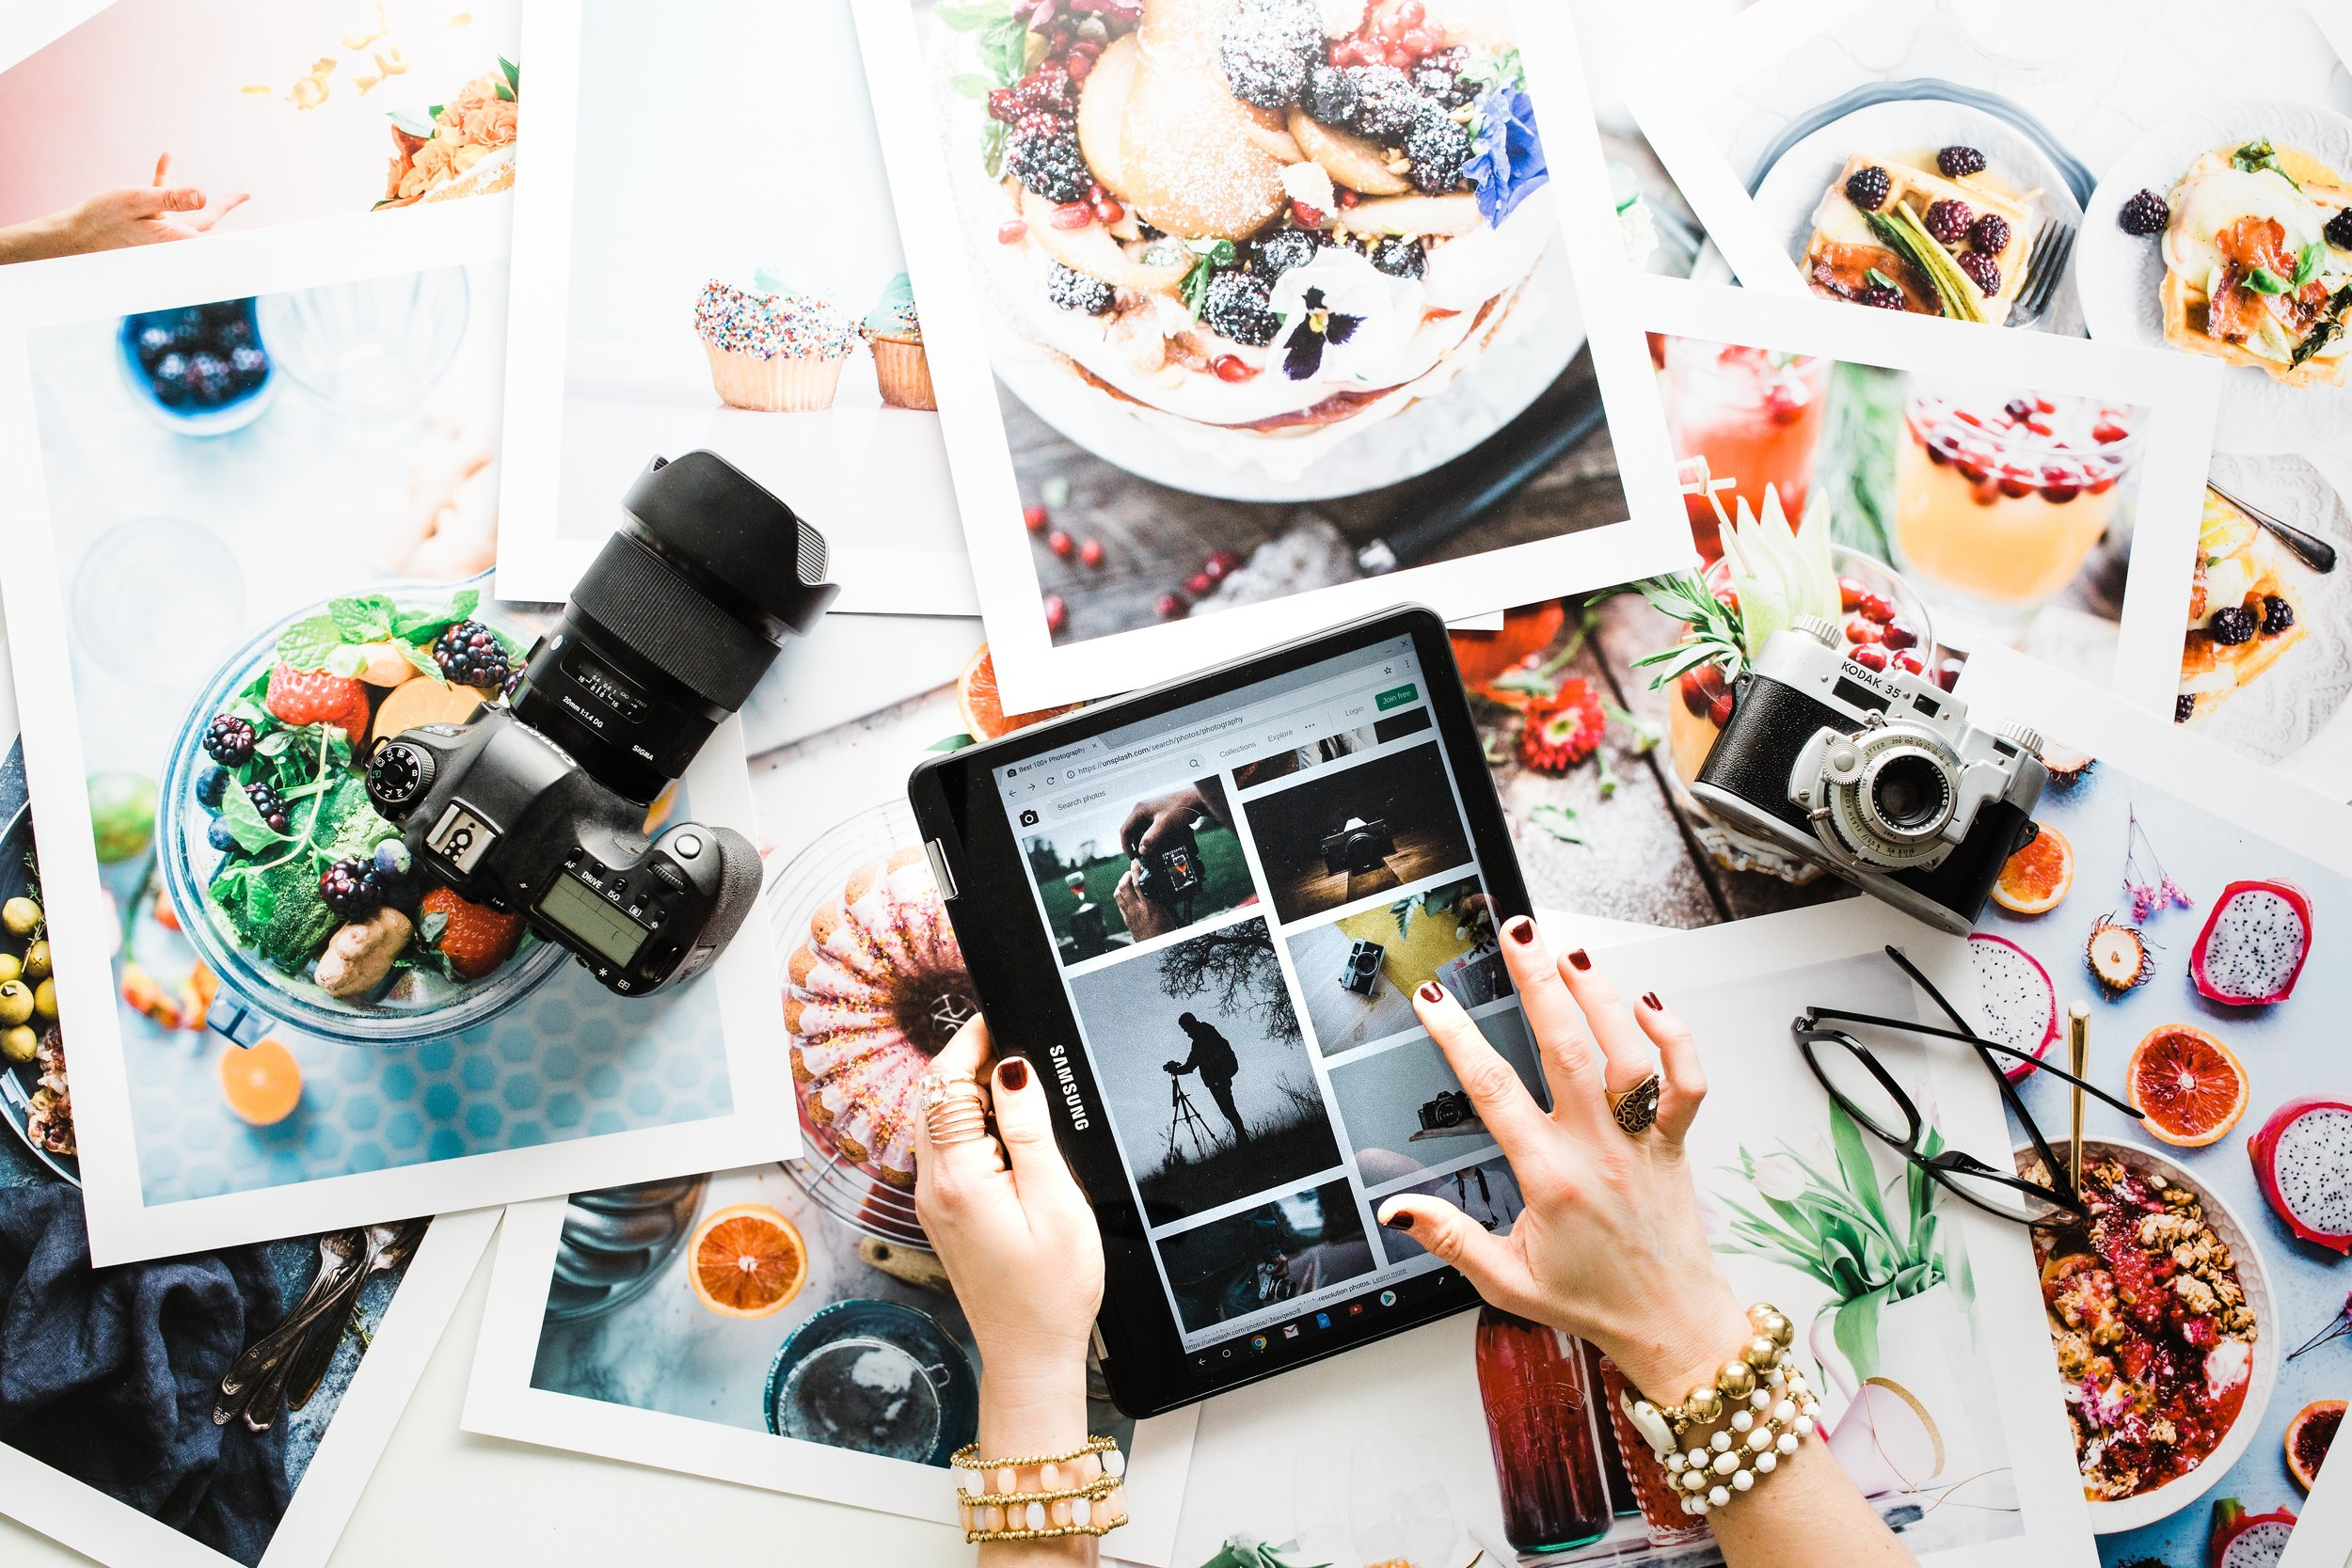 Instagram Hashtags for Food Bloggers